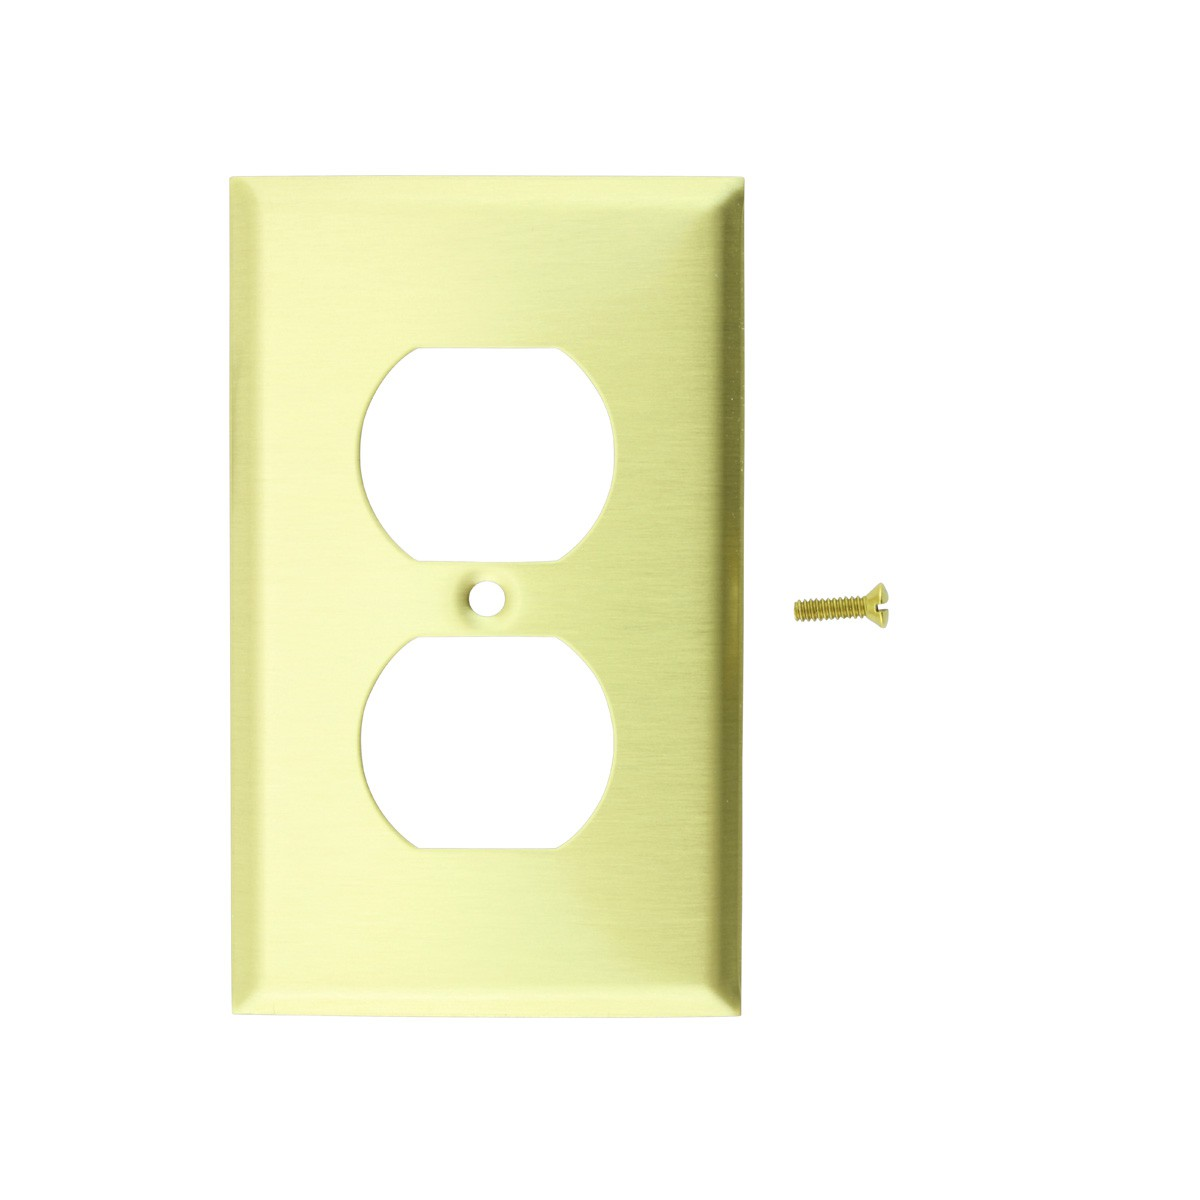 Switch Plate Brushed Brass Single Outlet Switch Plate Wall Plates Switch Plates